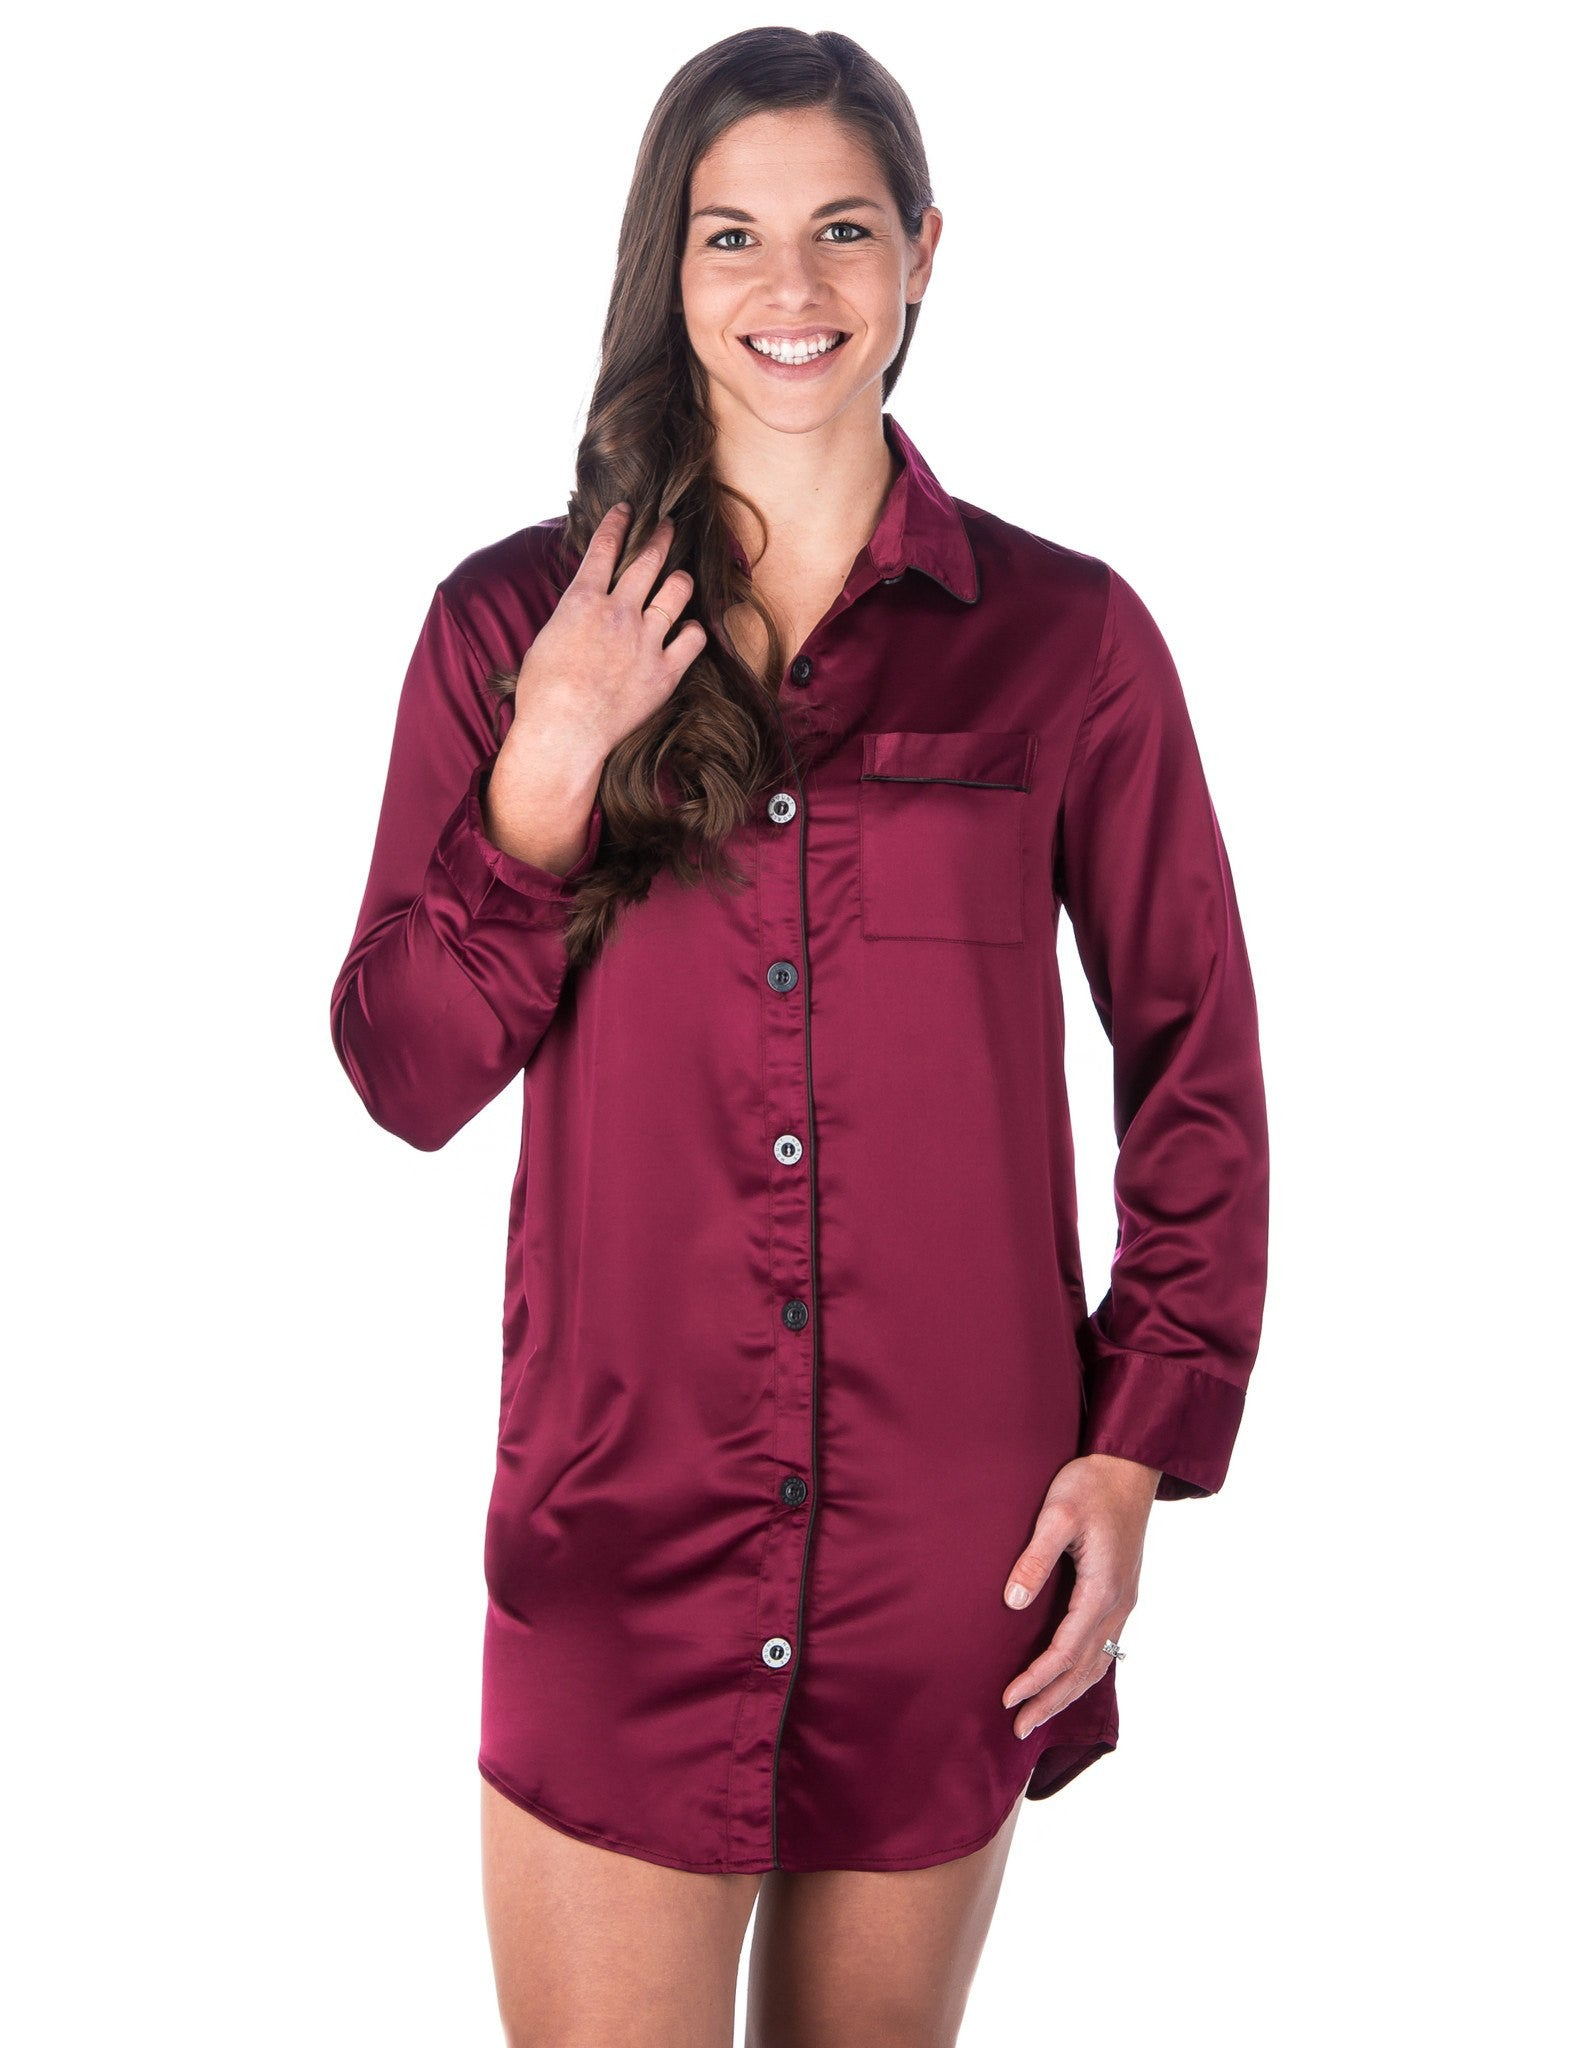 Women's Premium Satin Long Sleeve Sleep Shirt